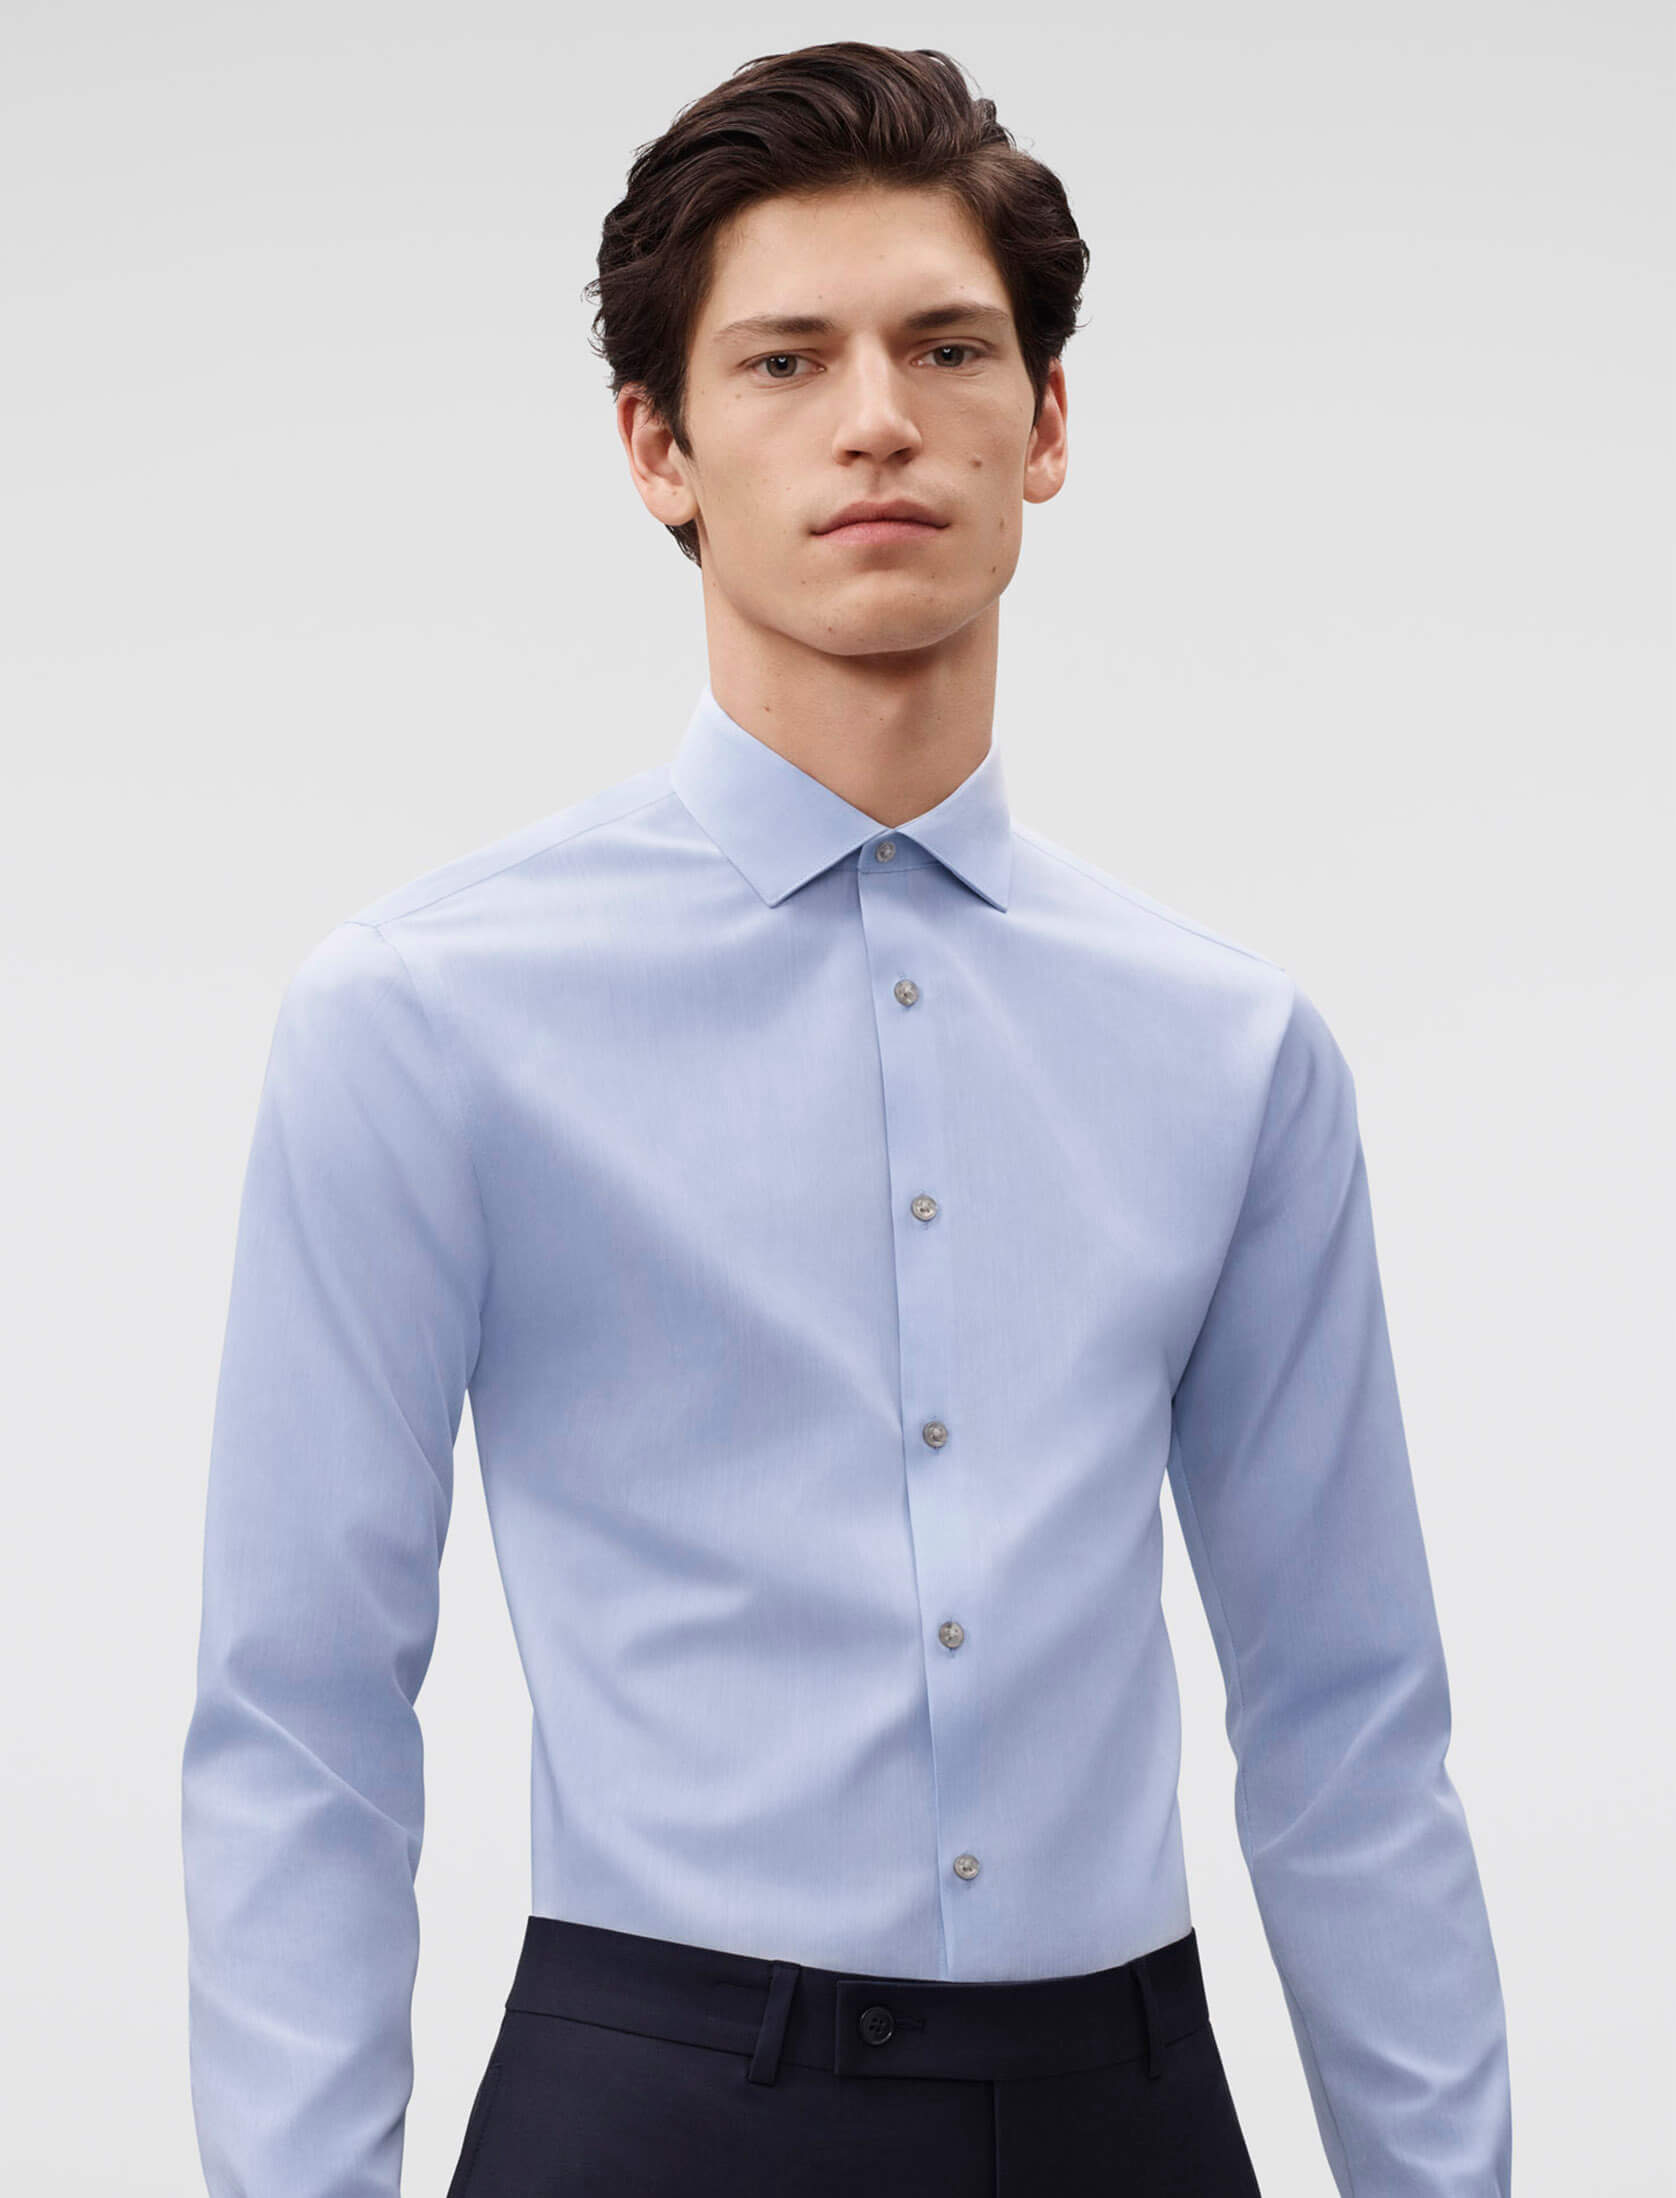 9a5e4cec Men's Dress Shirts | Fitted and Casual Dress Shirts